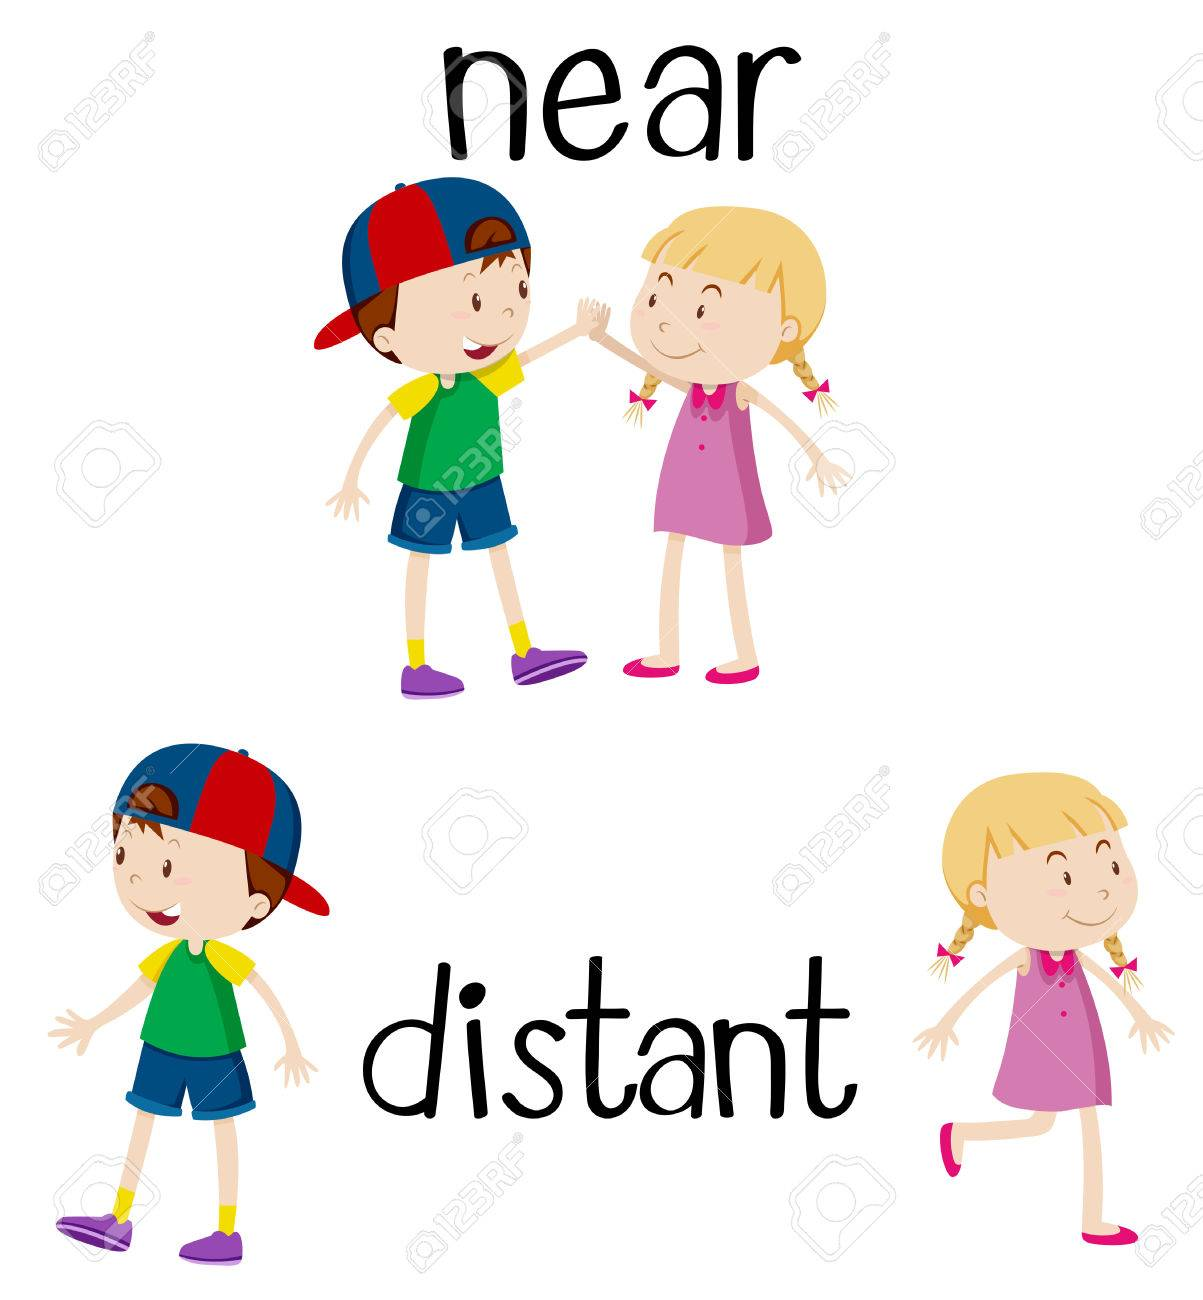 Opposite words for near and distant illustration.